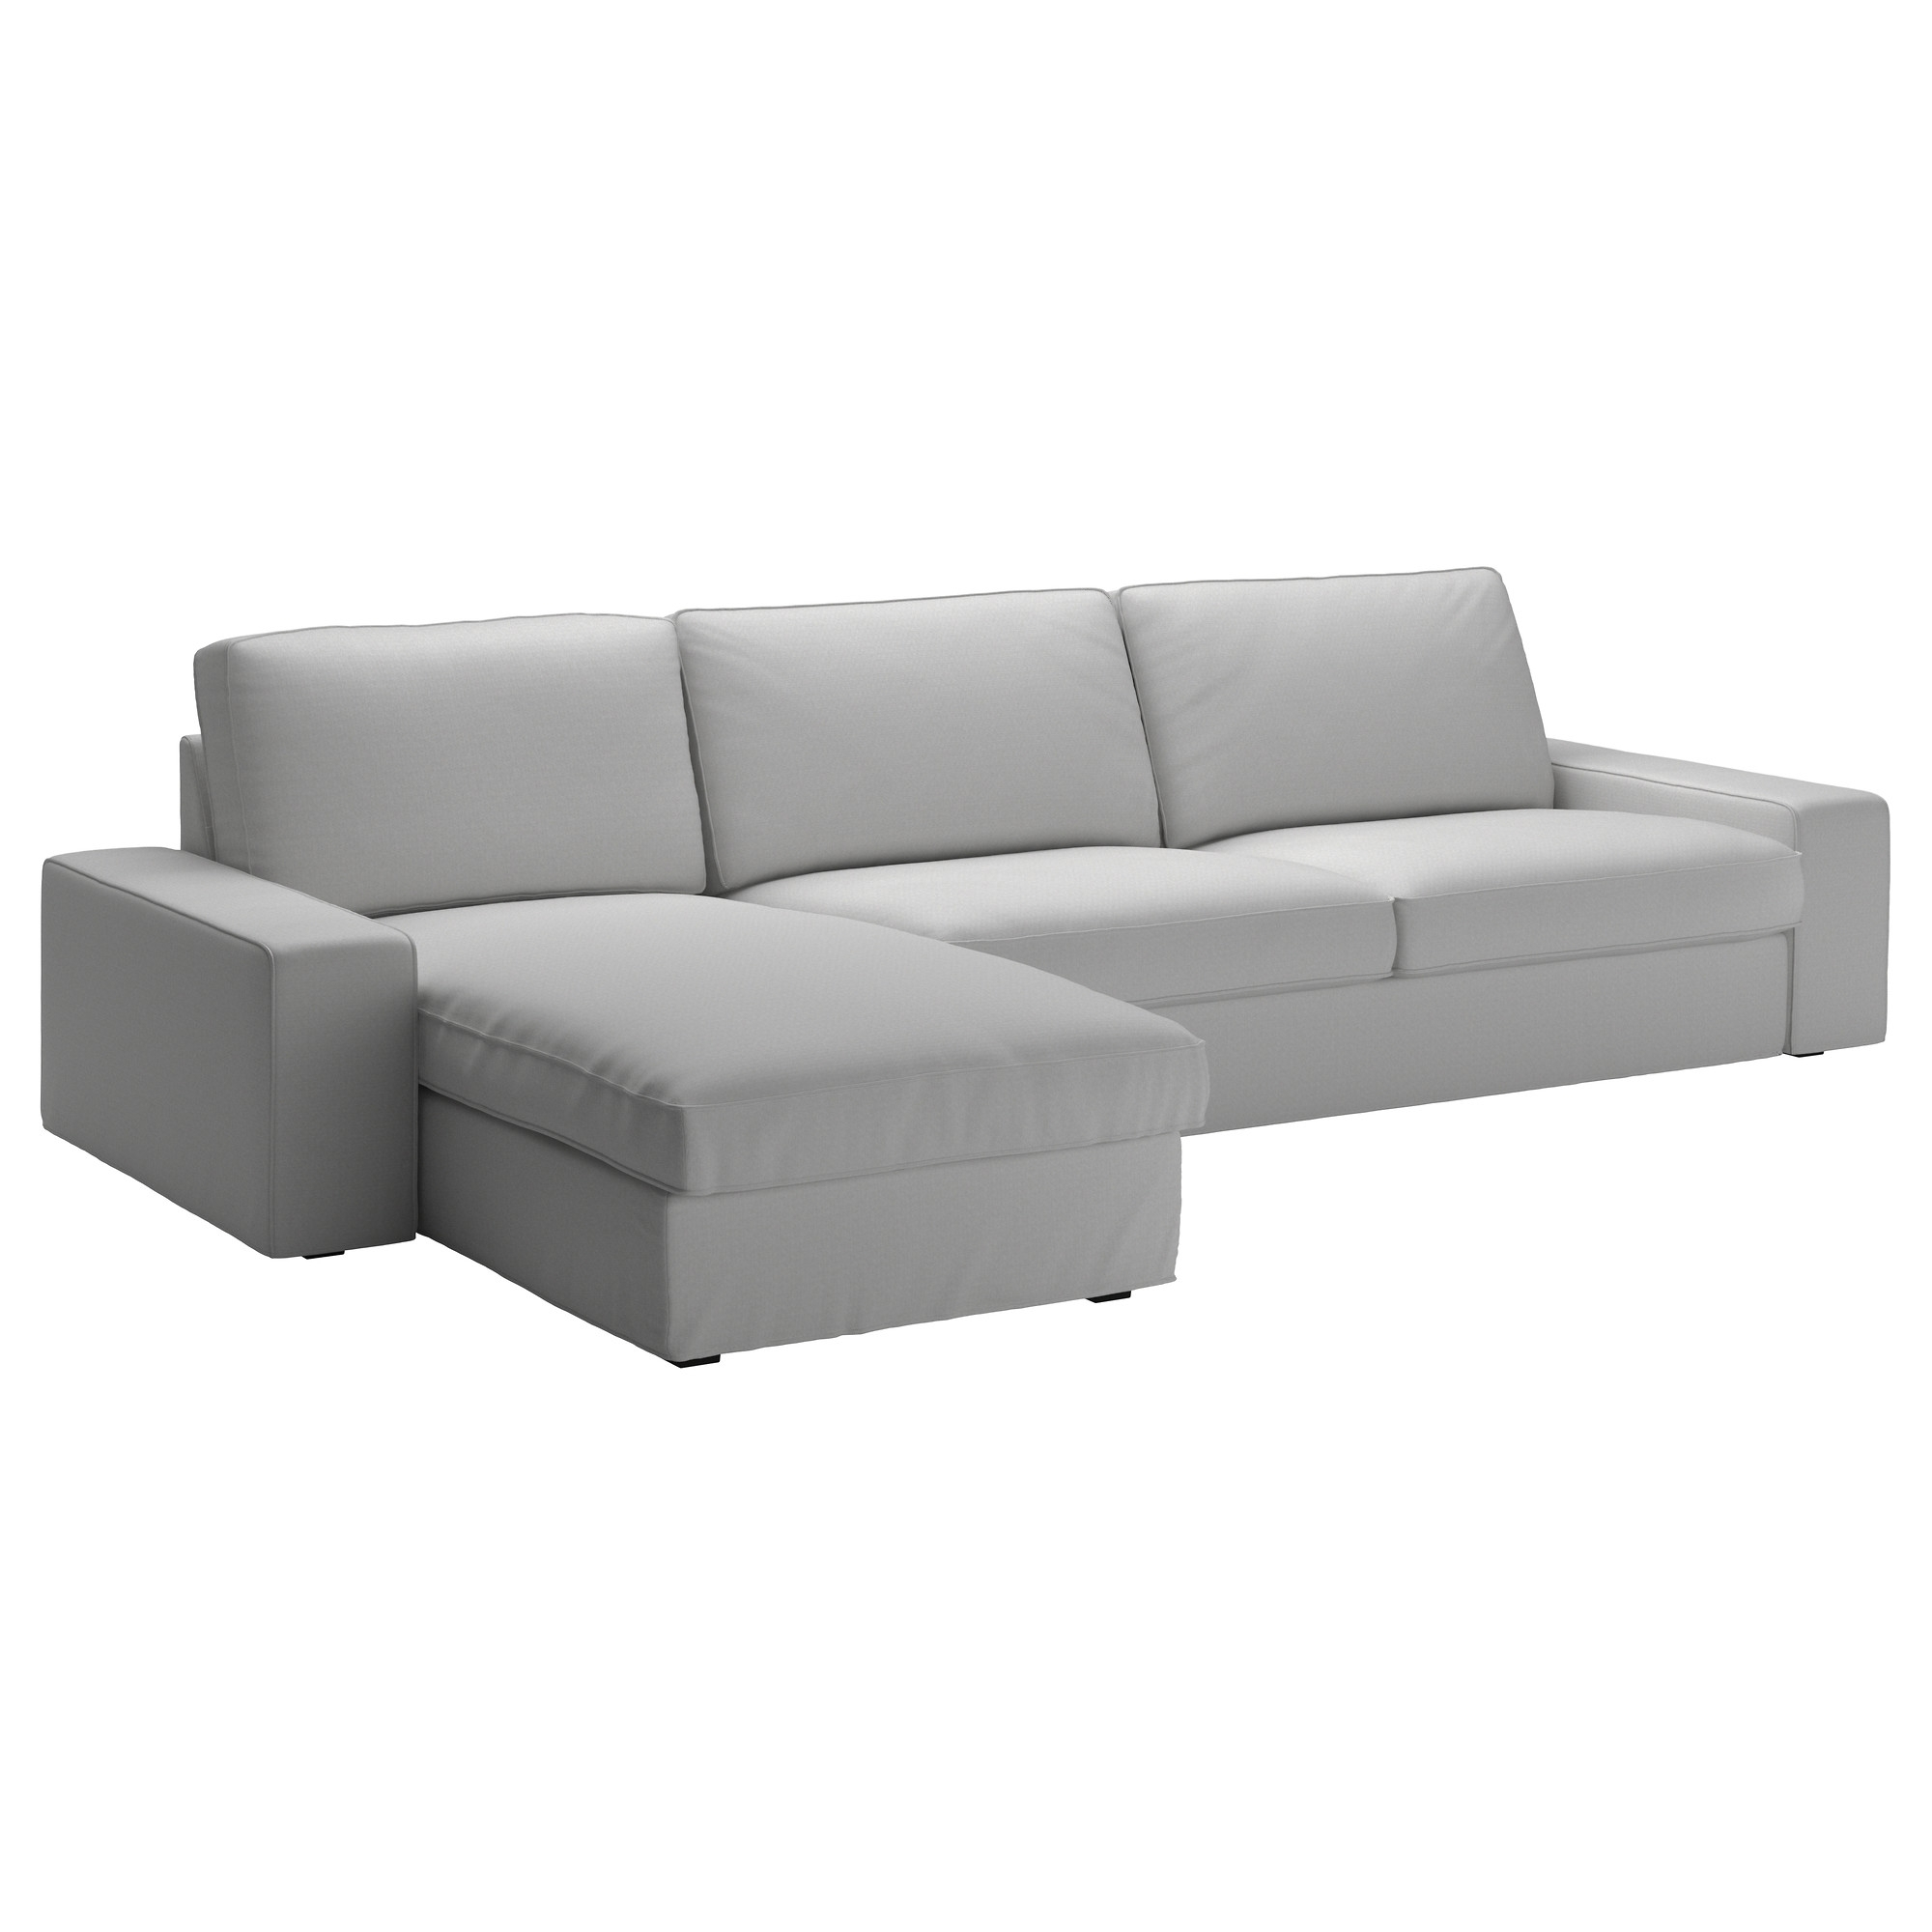 Ikea Sectional Sofa Beds With Regard To Most Up To Date Kivik Sectional, 4 Seat – Orrsta Light Gray – Ikea (View 8 of 15)